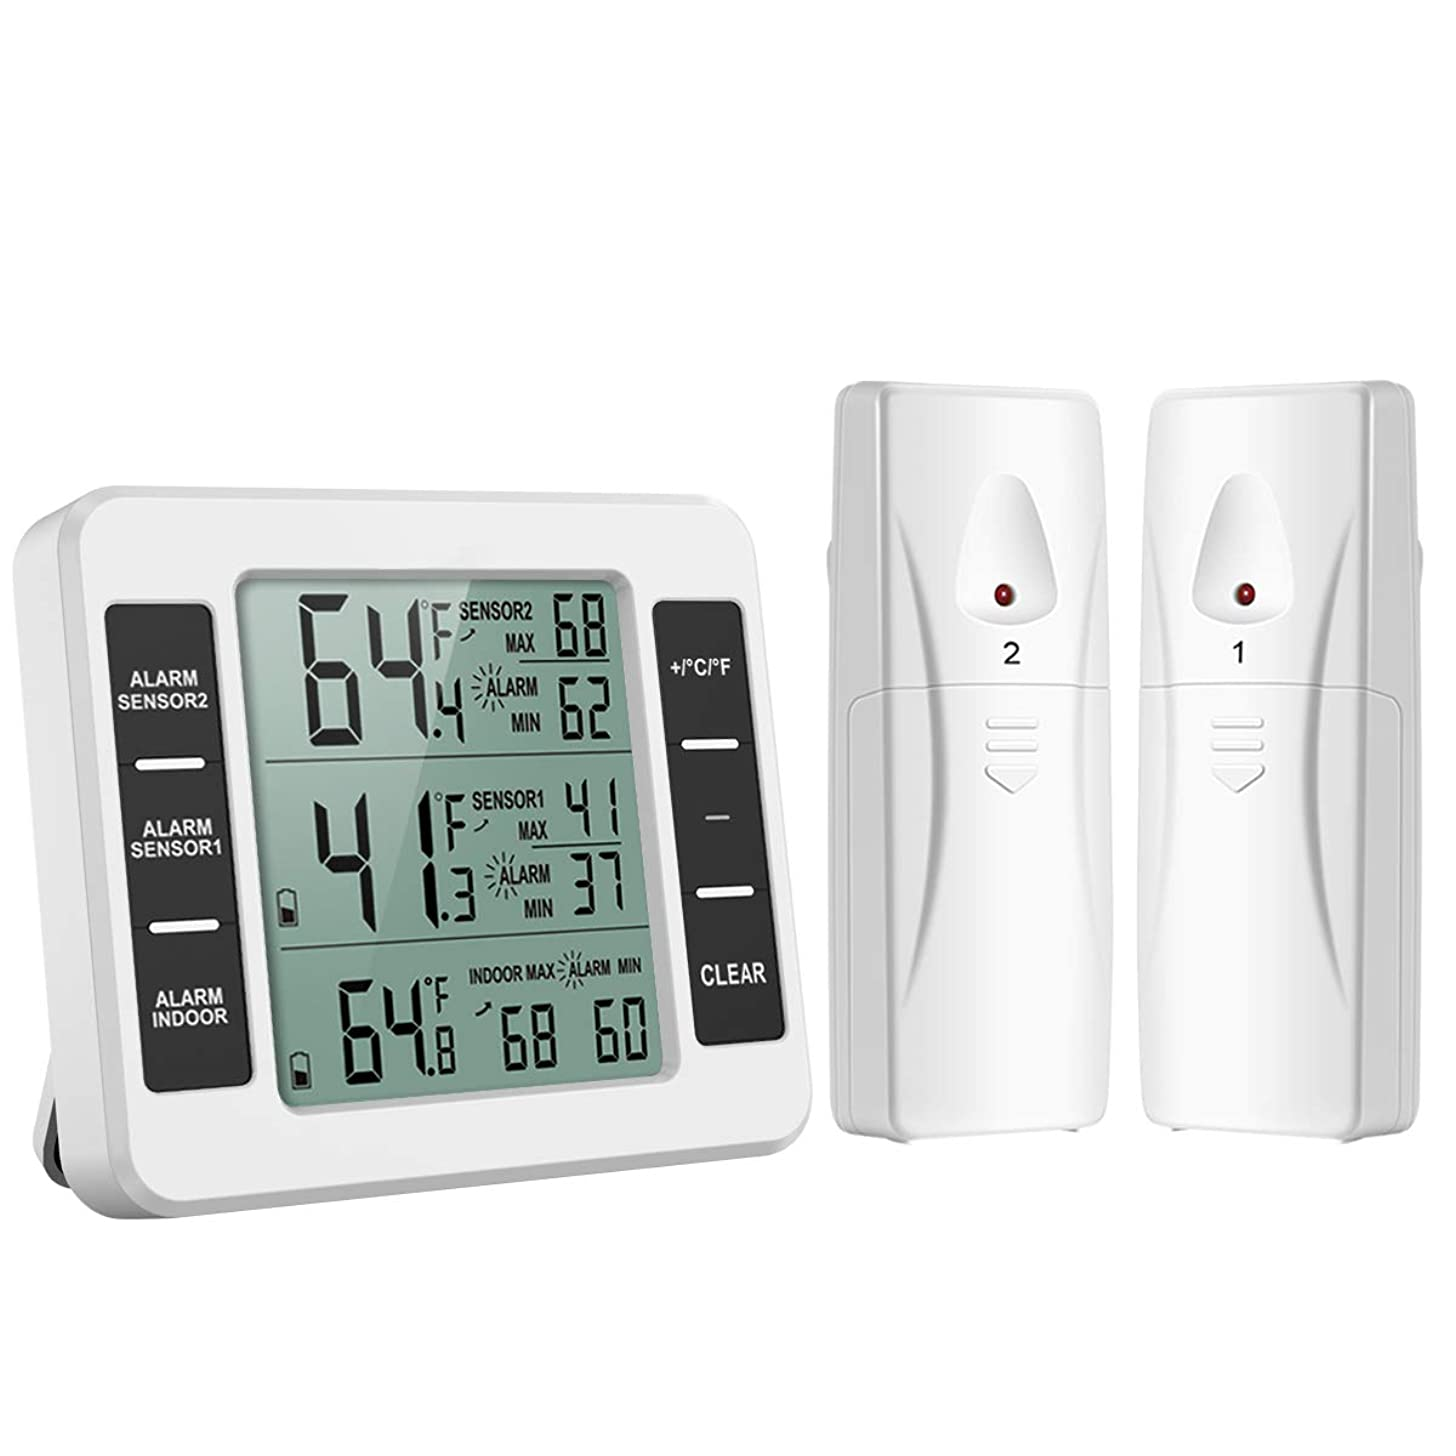 AMIR Refrigerator Thermometer, Wireless Indoor Outdoor Digital Freezer Thermometer, Sensor Temperature Monitor with Audible Alarm Temperature Gauge for Freezer Kitchen Home